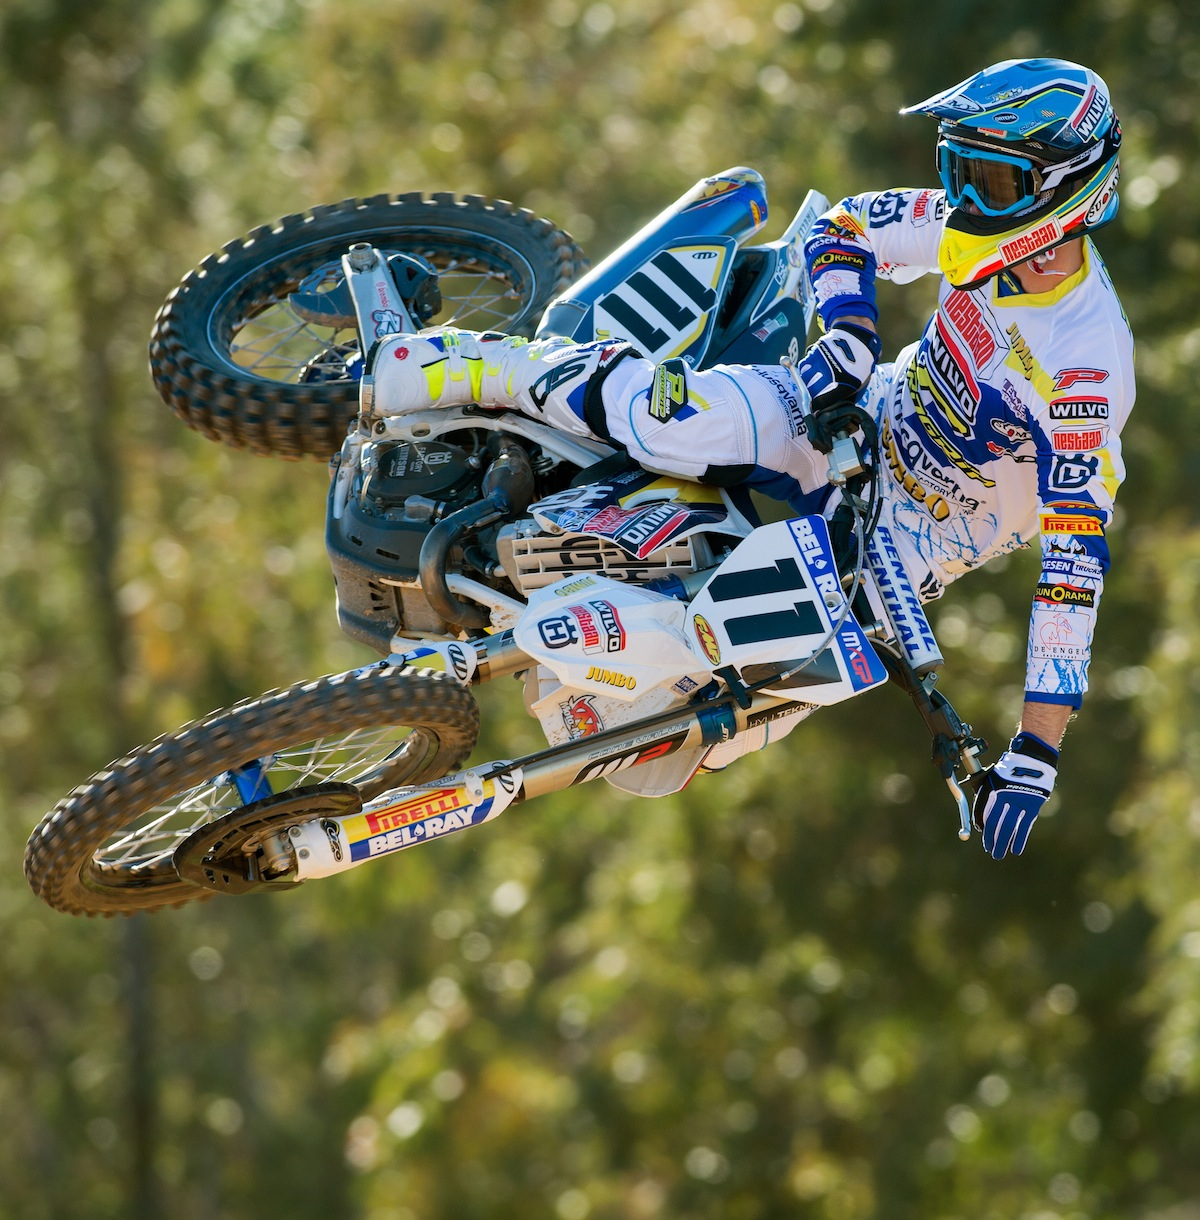 MOTOCROSS ACTION WEEKEND NEWS ROUND-UP: HURRY UP AND WAIT